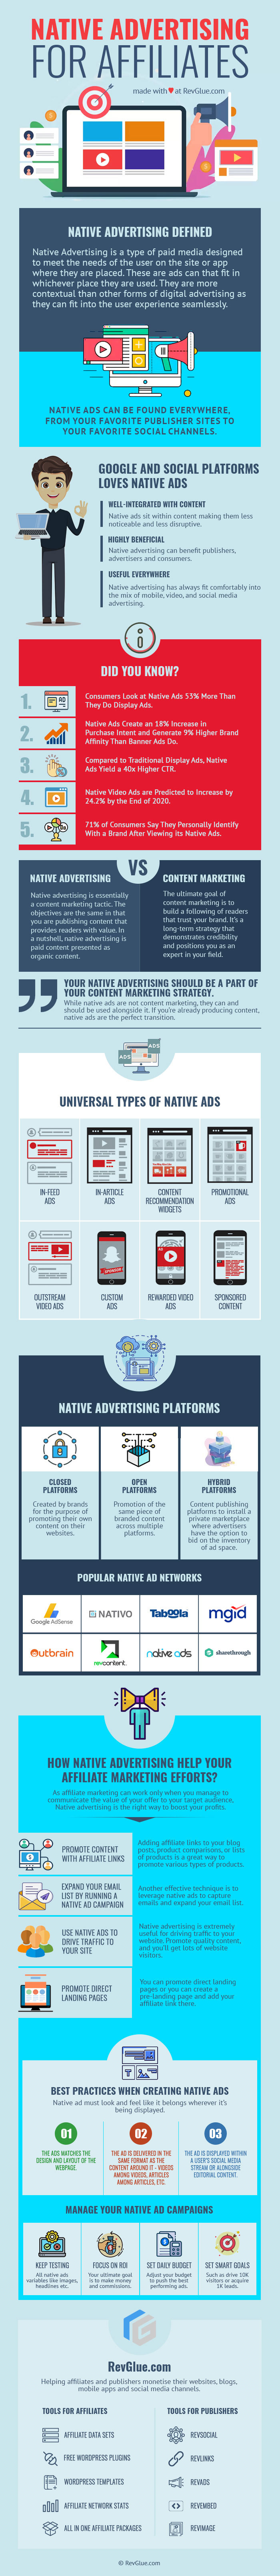 Native Advertising for Affiliates